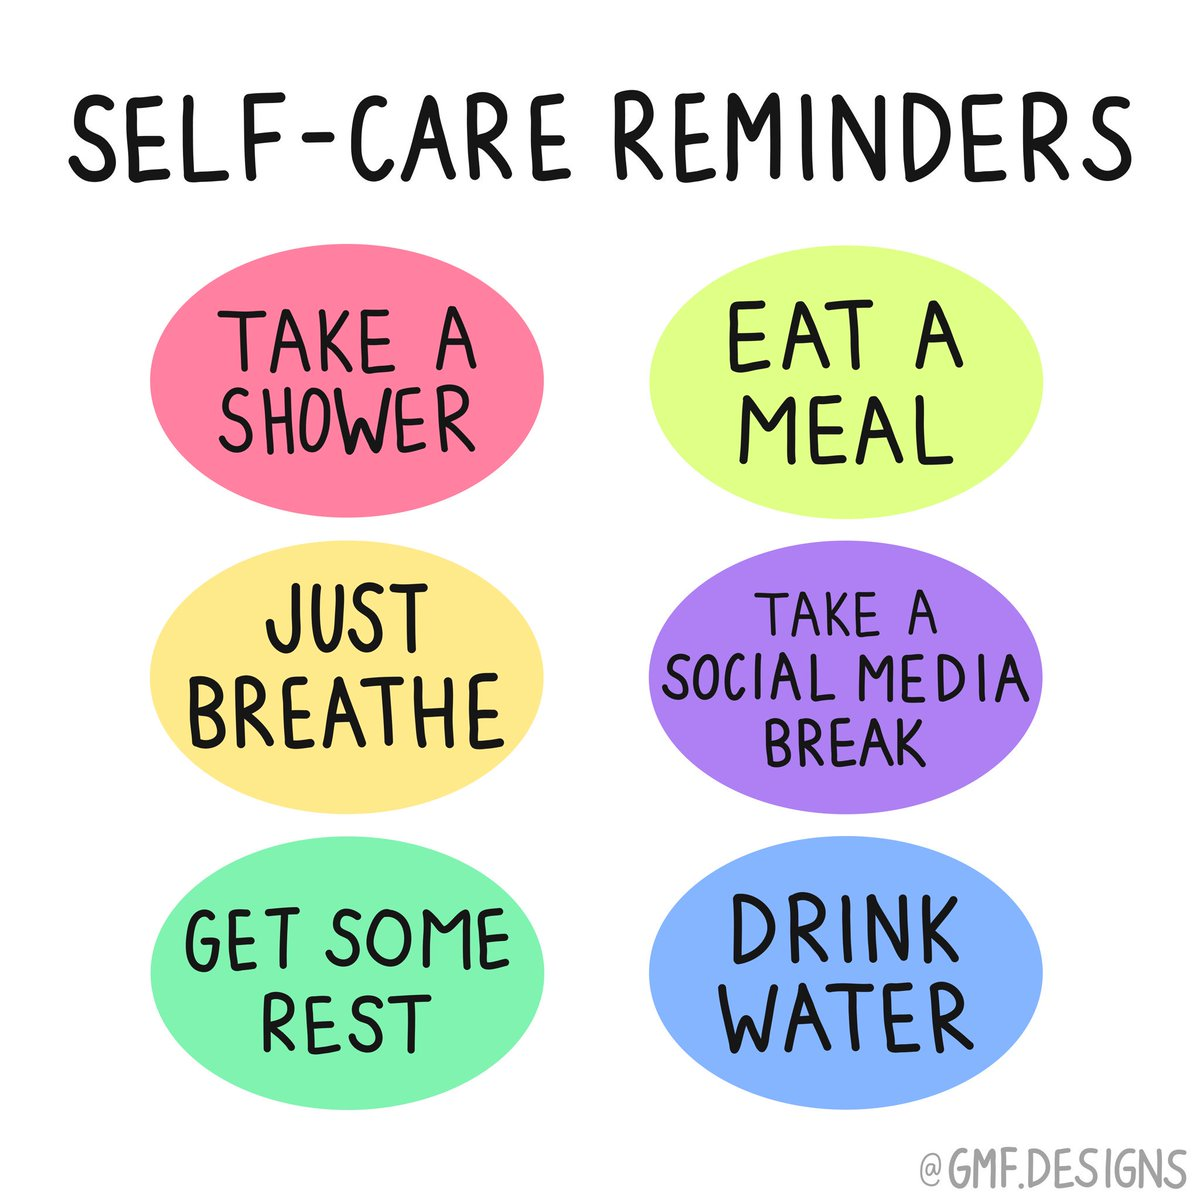 RT @ProjectBuddy: Self-care may seem simple, but sometimes we all need a reminder. https://t.co/h4qP3kAvO9